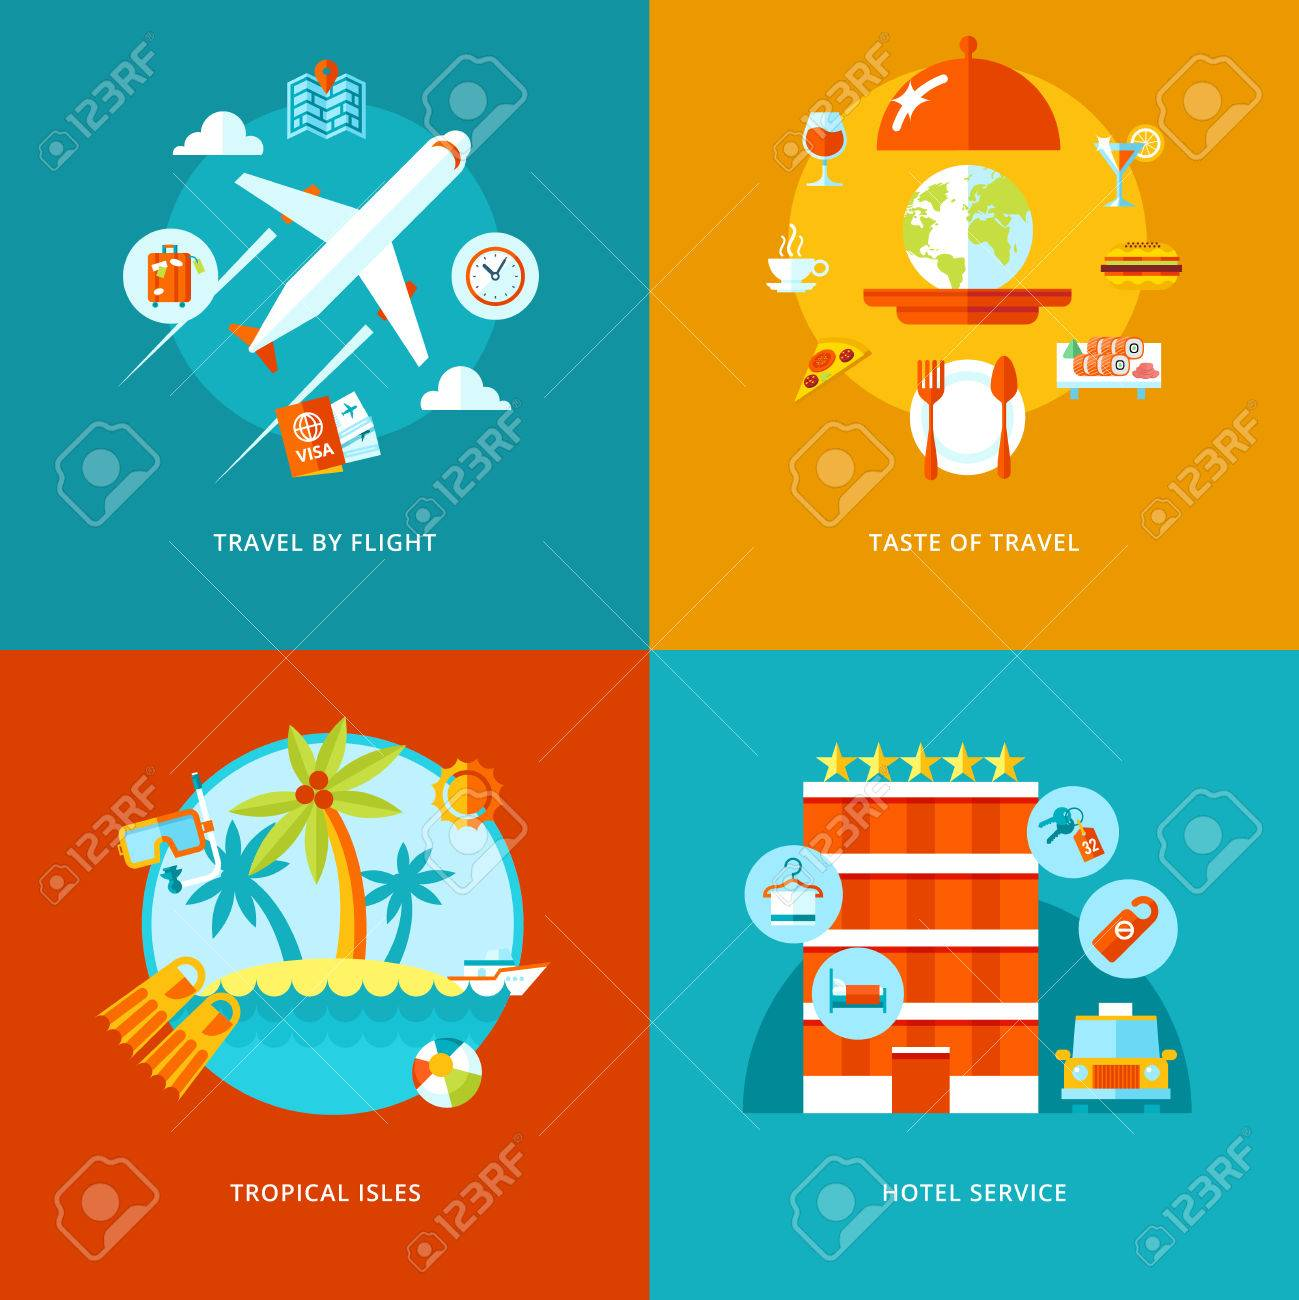 Vector Travel And Tourism Icons Set For Web Design And Mobile Royalty Free Cliparts Vectors And Stock Illustration Image 30830465